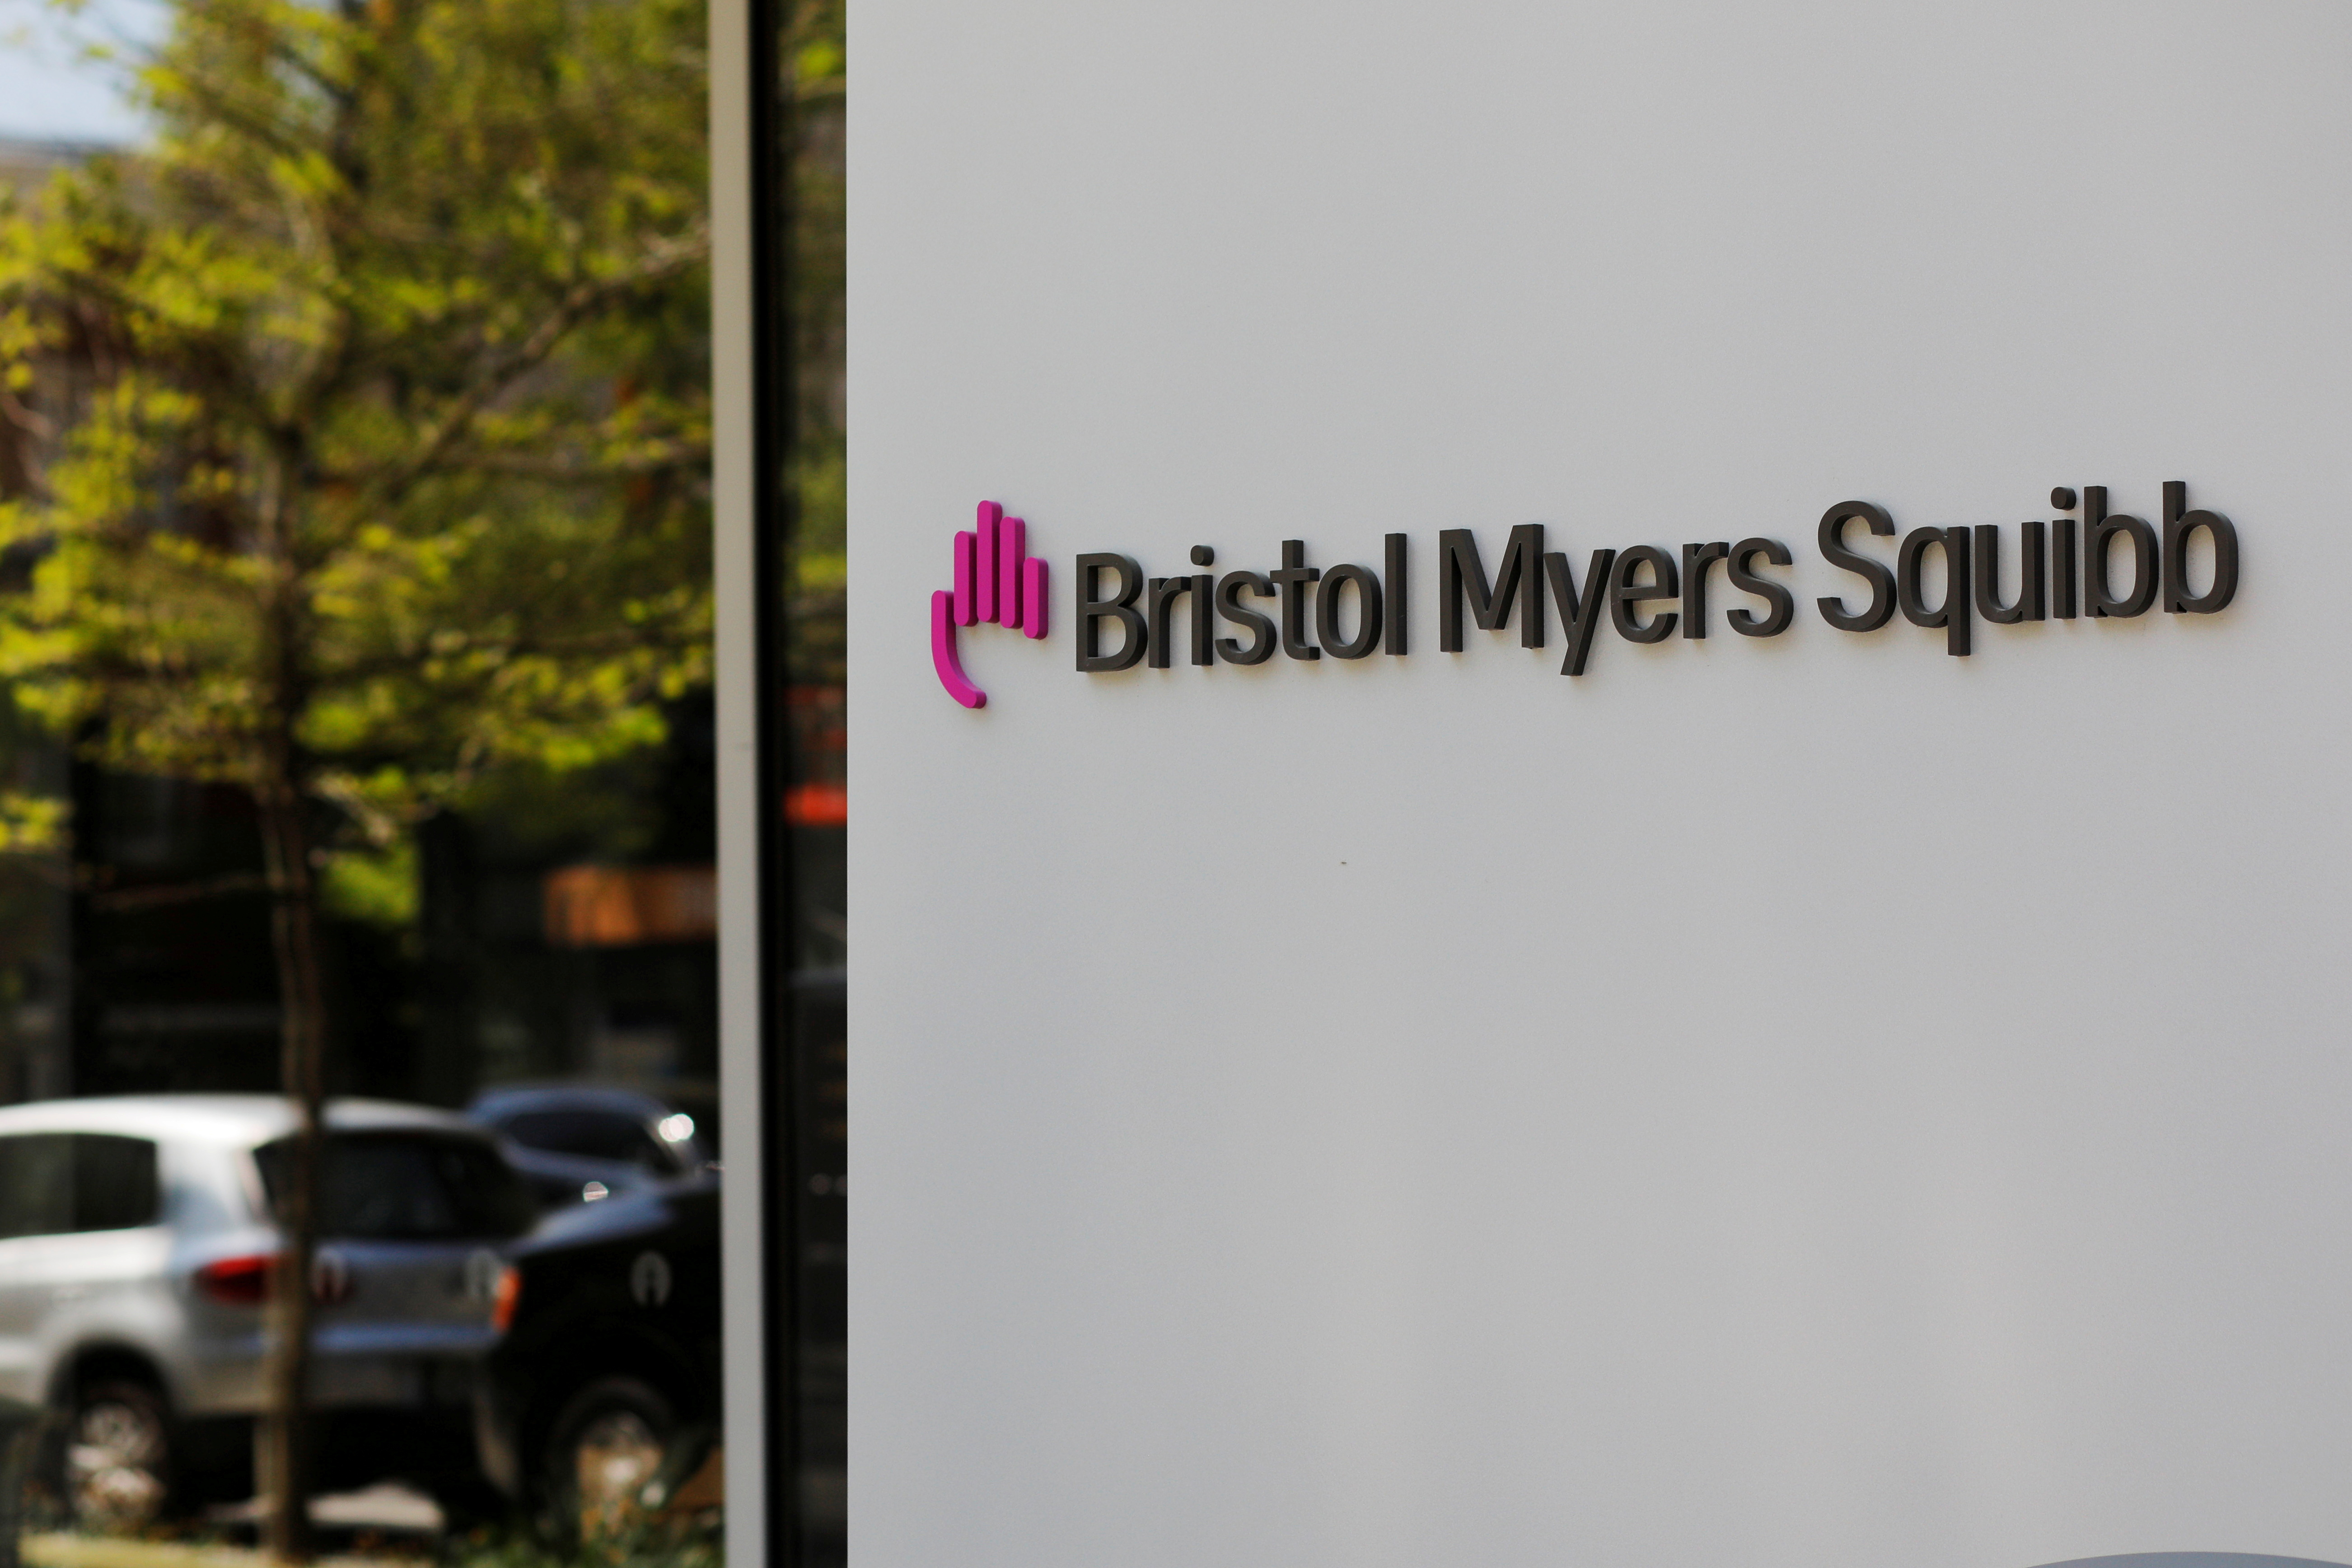 A sign stands outside a Bristol Myers Squibb facility in Cambridge, Massachusetts, U.S., May 20, 2021. REUTERS/Brian Snyder/File Photo